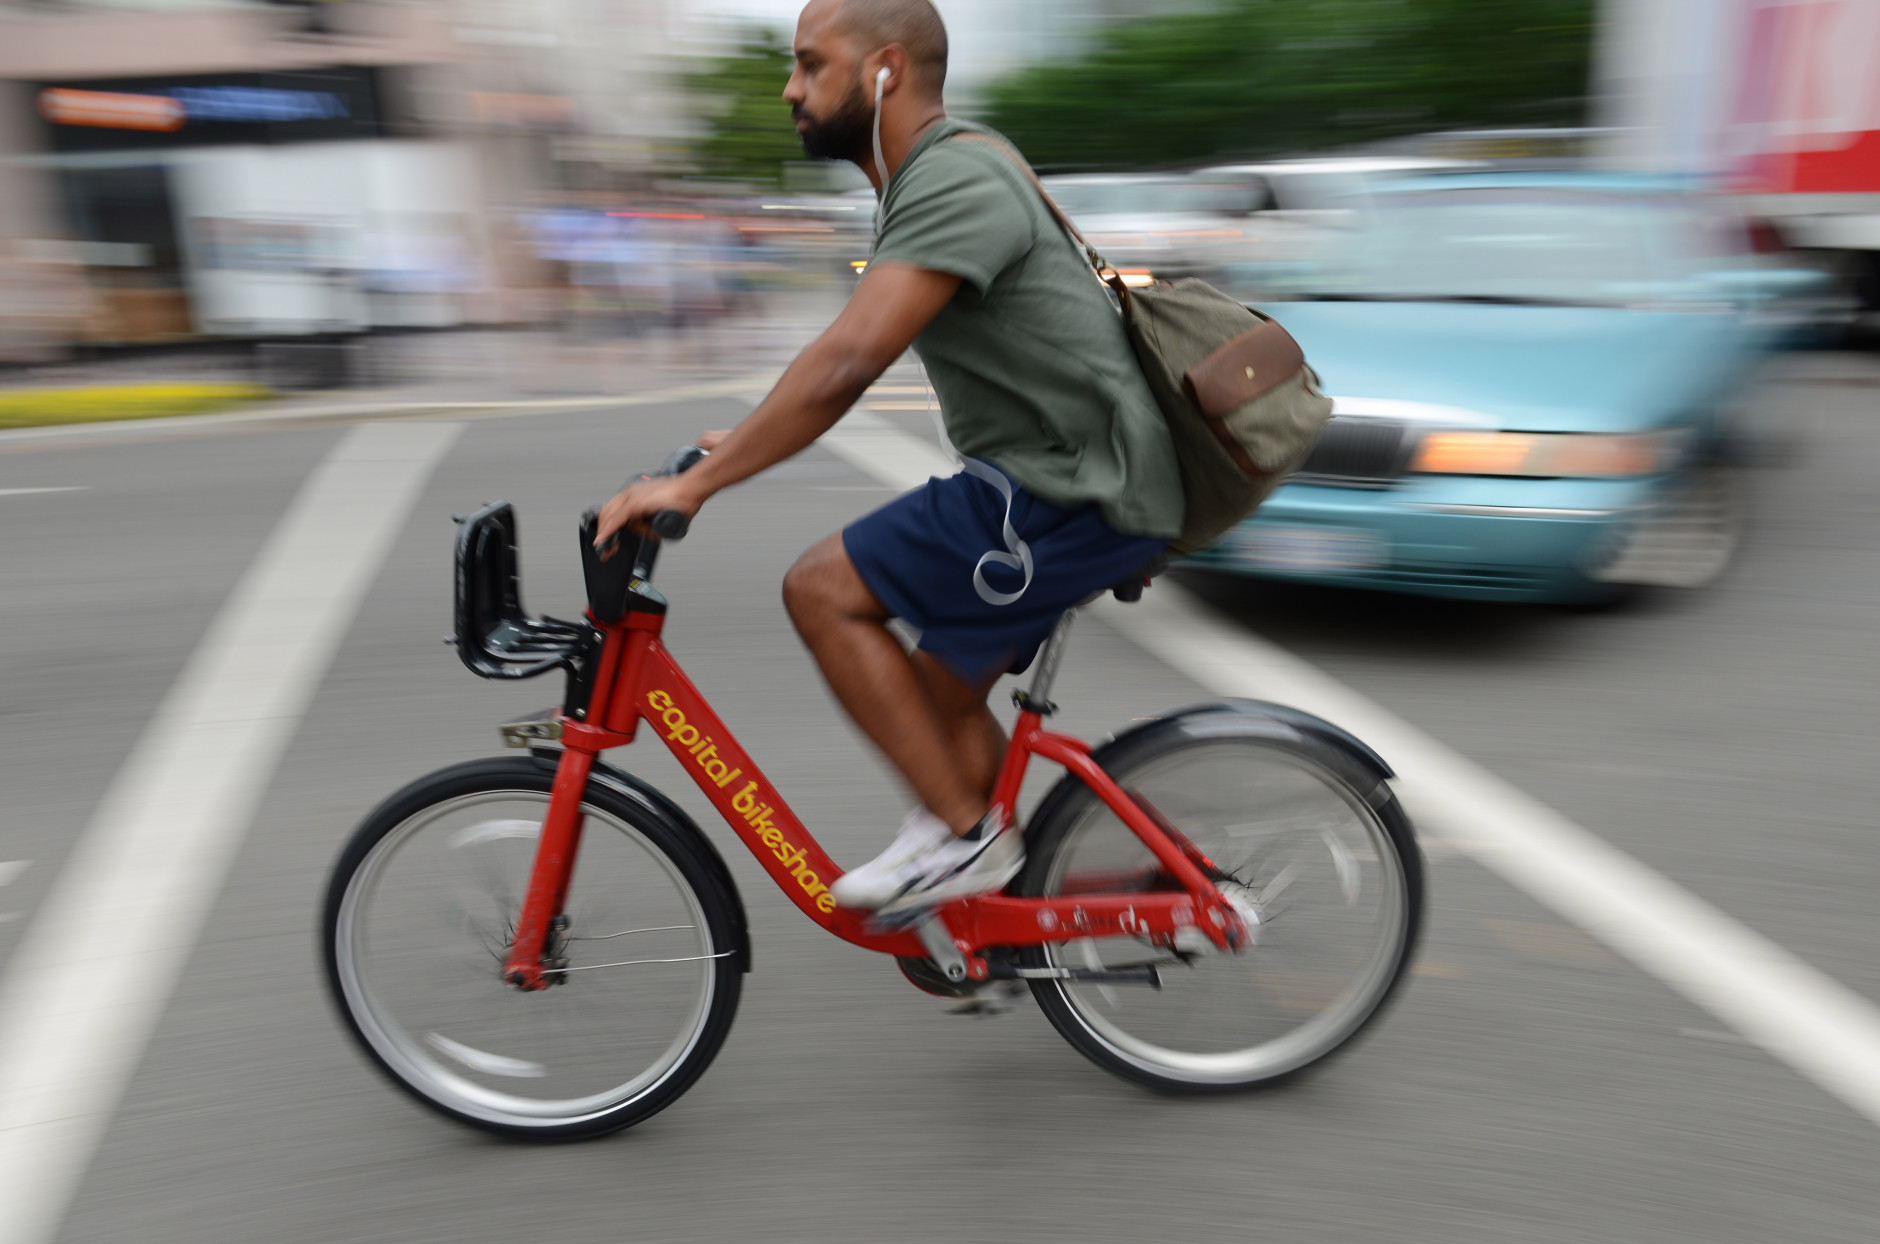 Are Uber, Lyft and Bikeshare competing for your Metro ride?